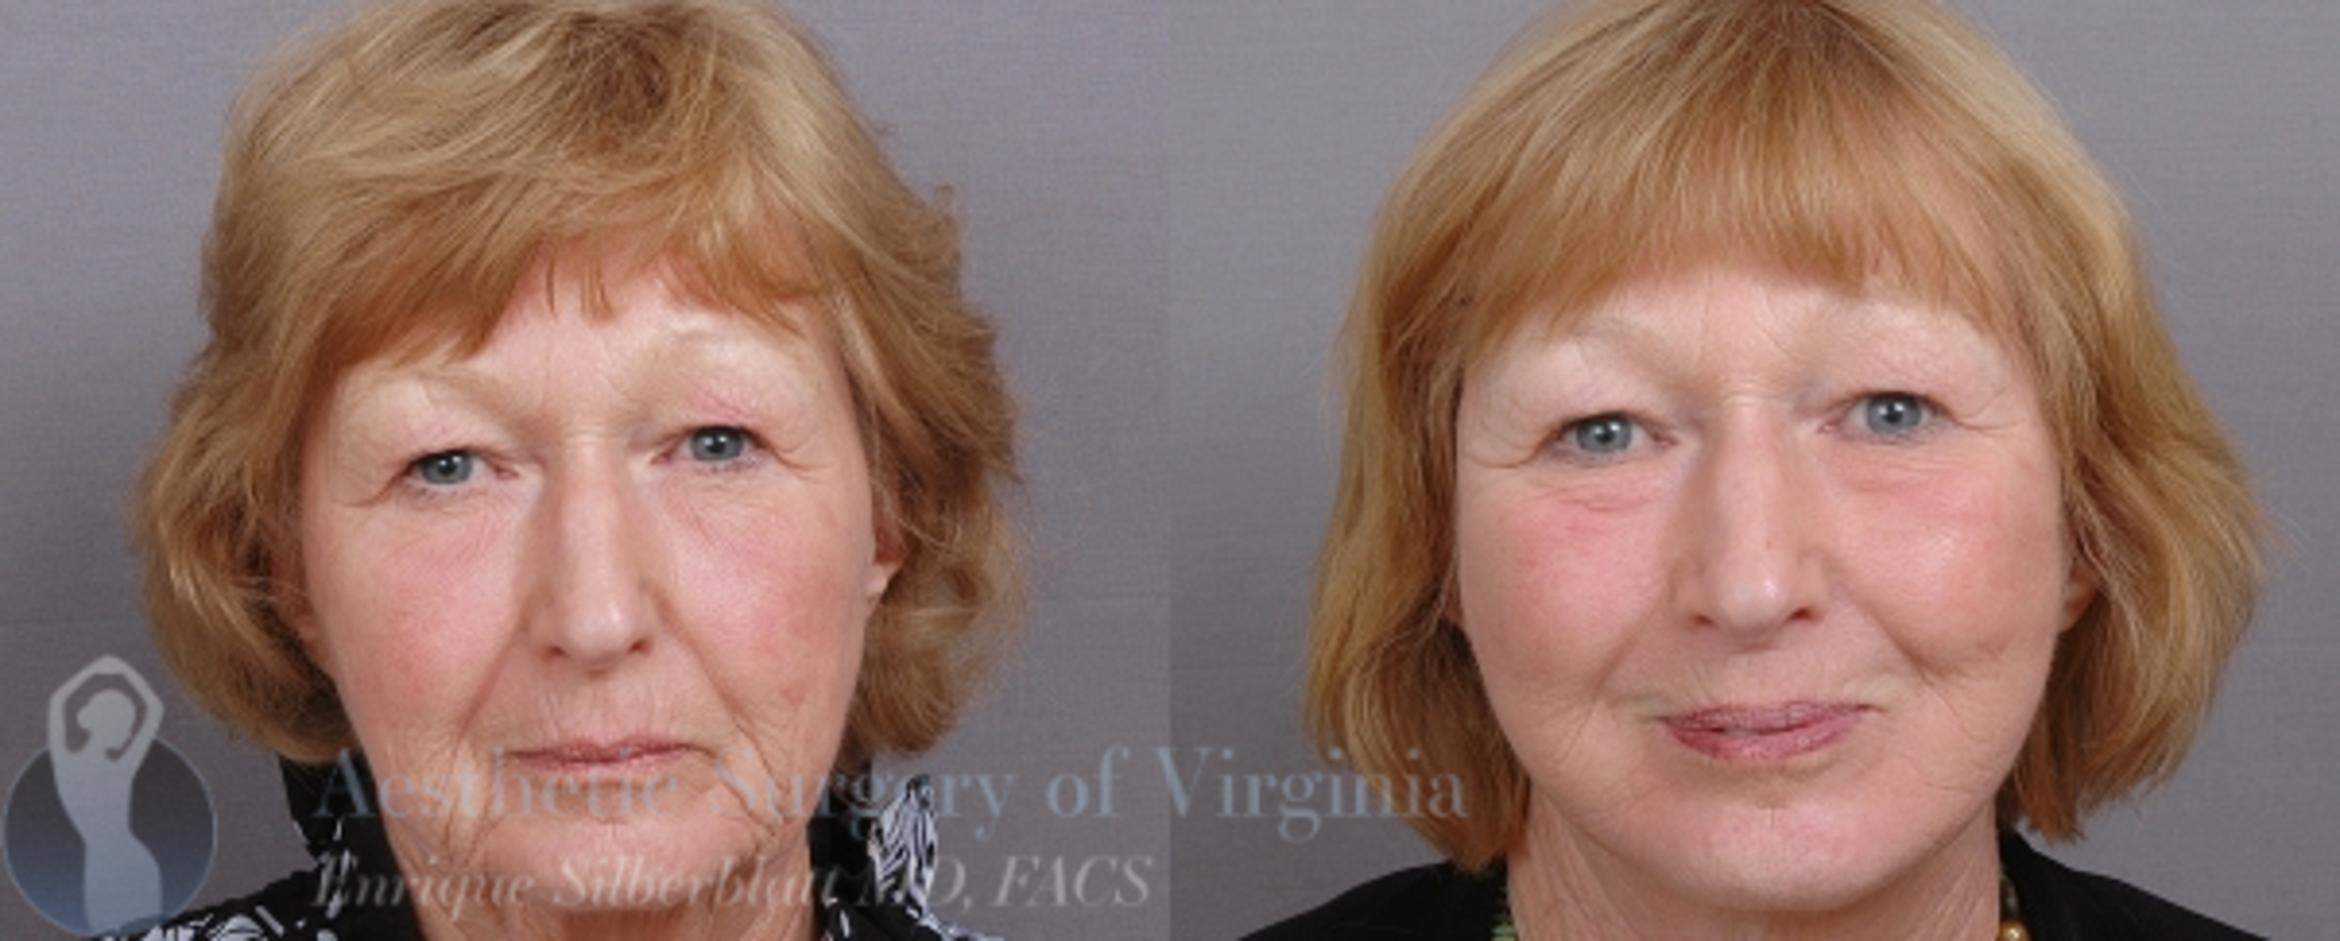 Facelift Case 47 Before & After View #1 | Roanoke, VA | Aesthetic Surgery of Virginia: Enrique Silberblatt, MD